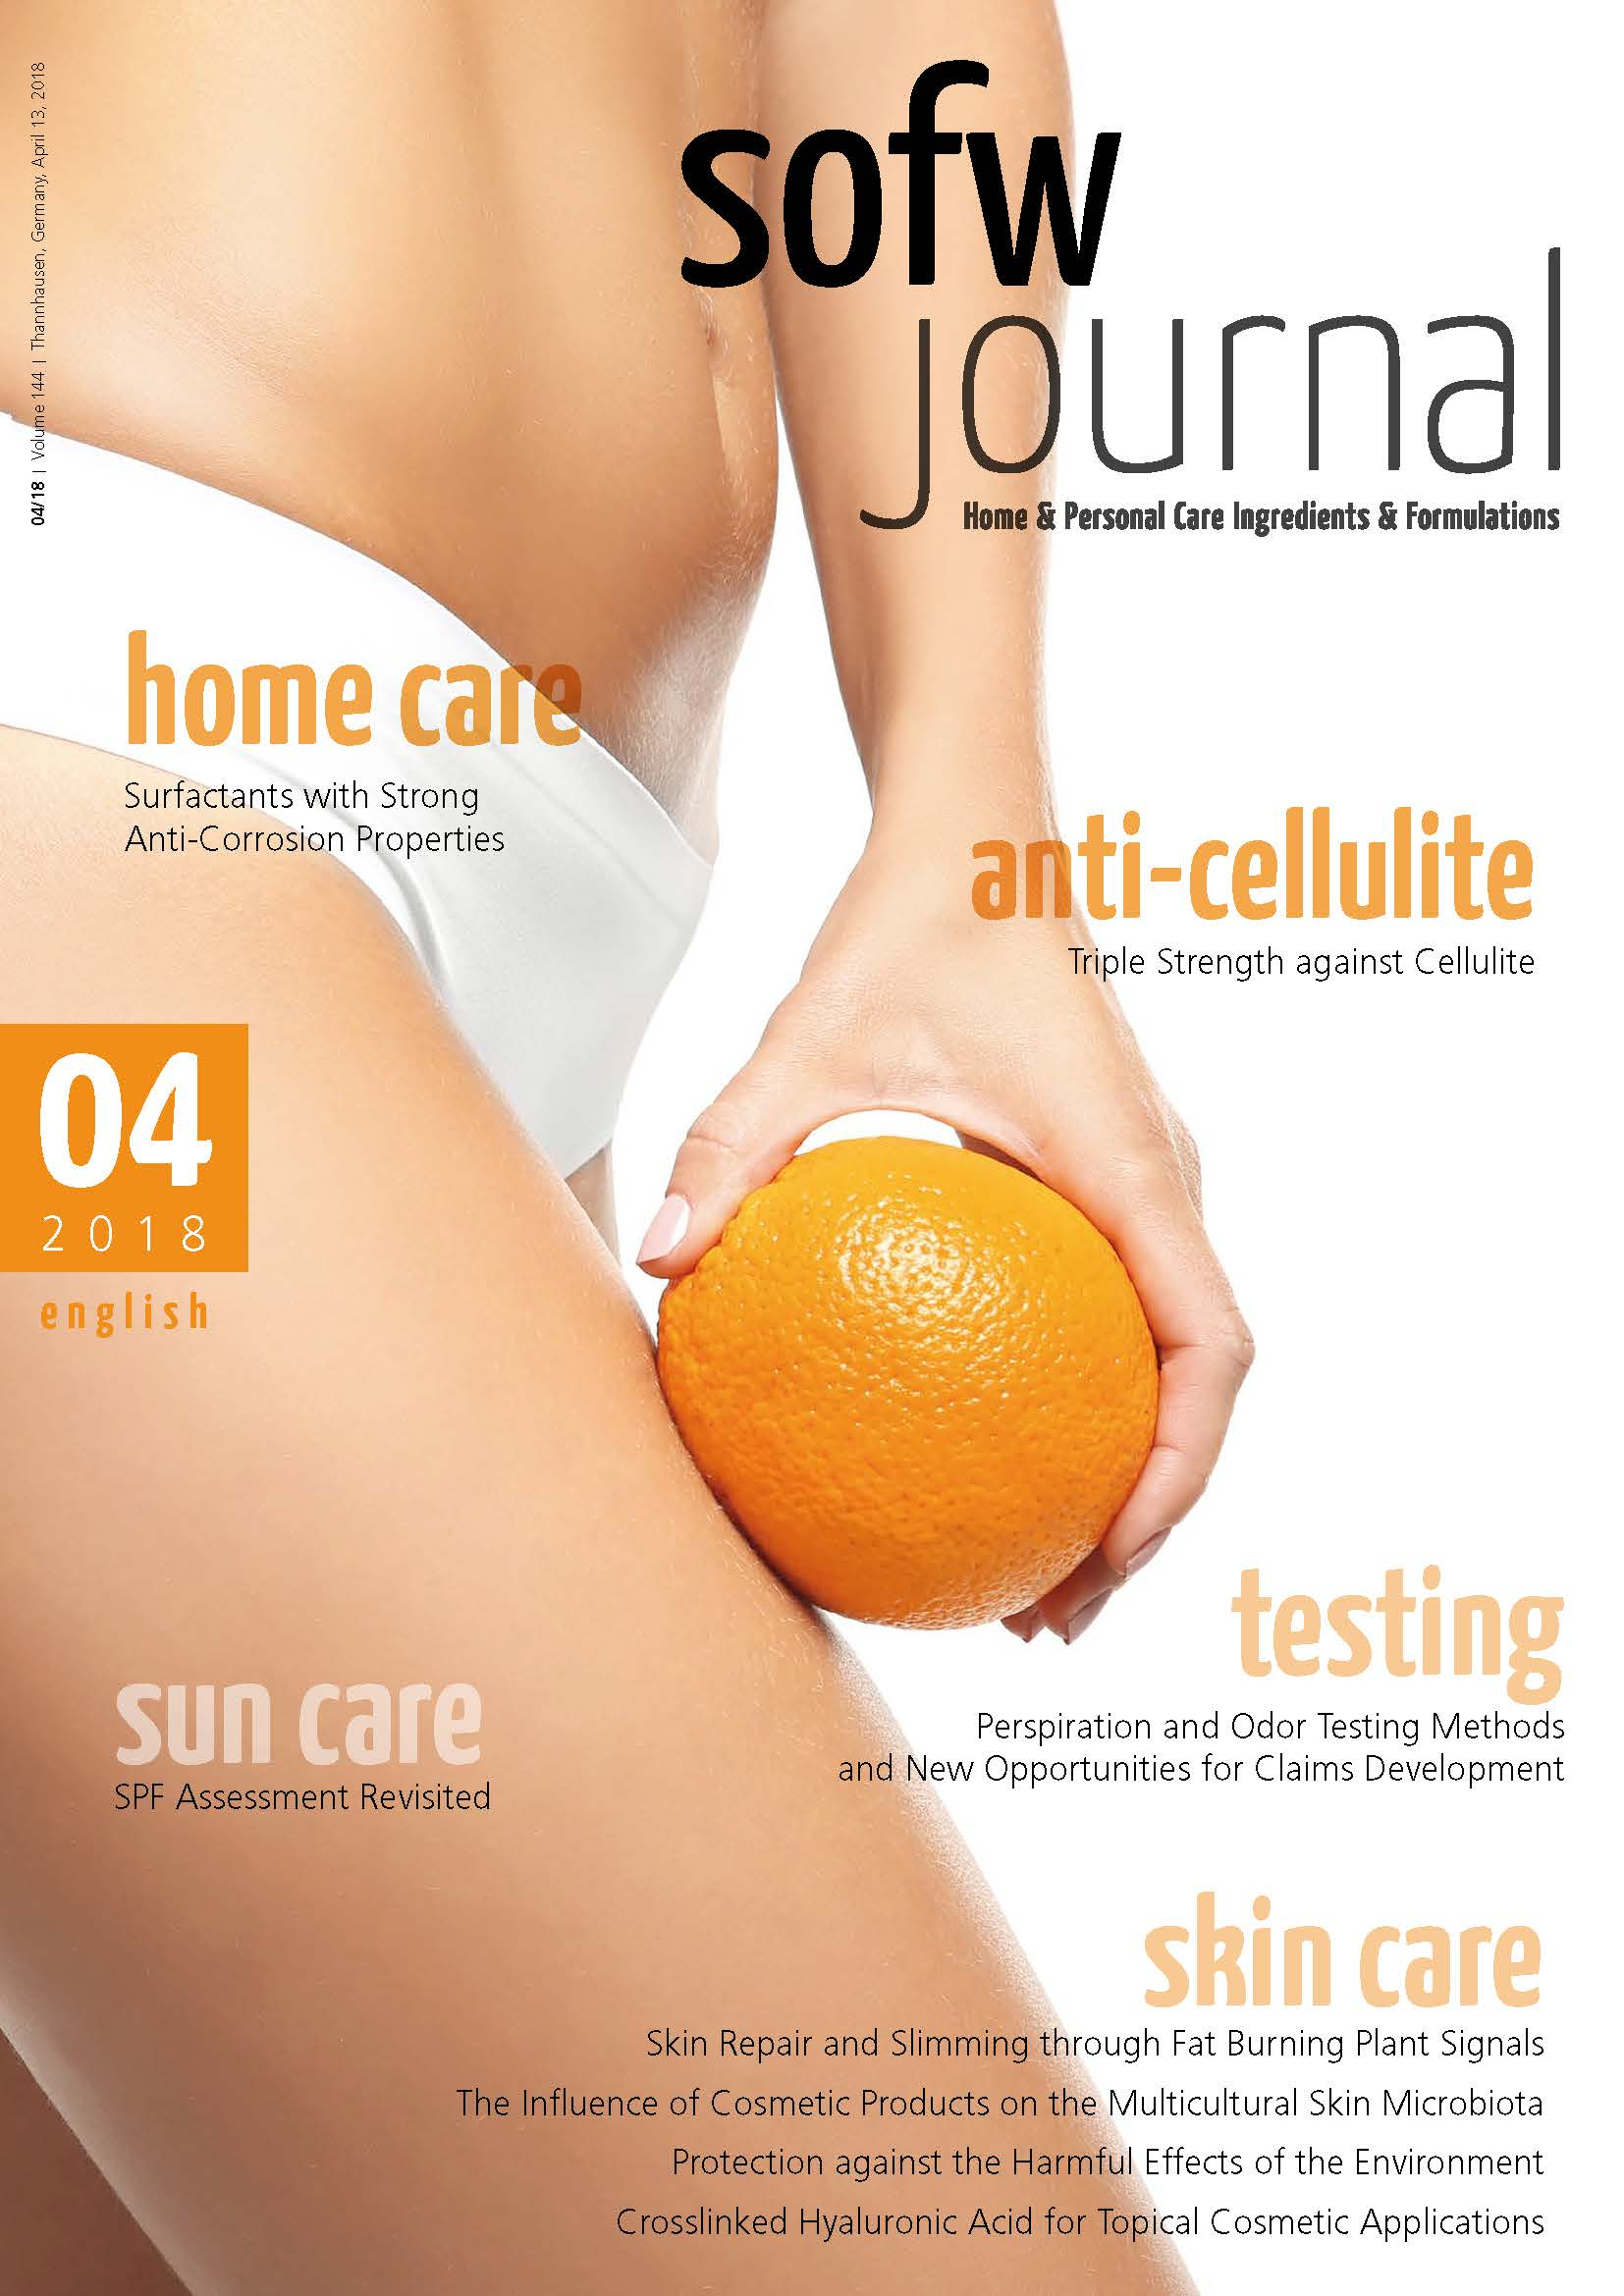 sofwjournal_en_2018_04_cover_1020971636